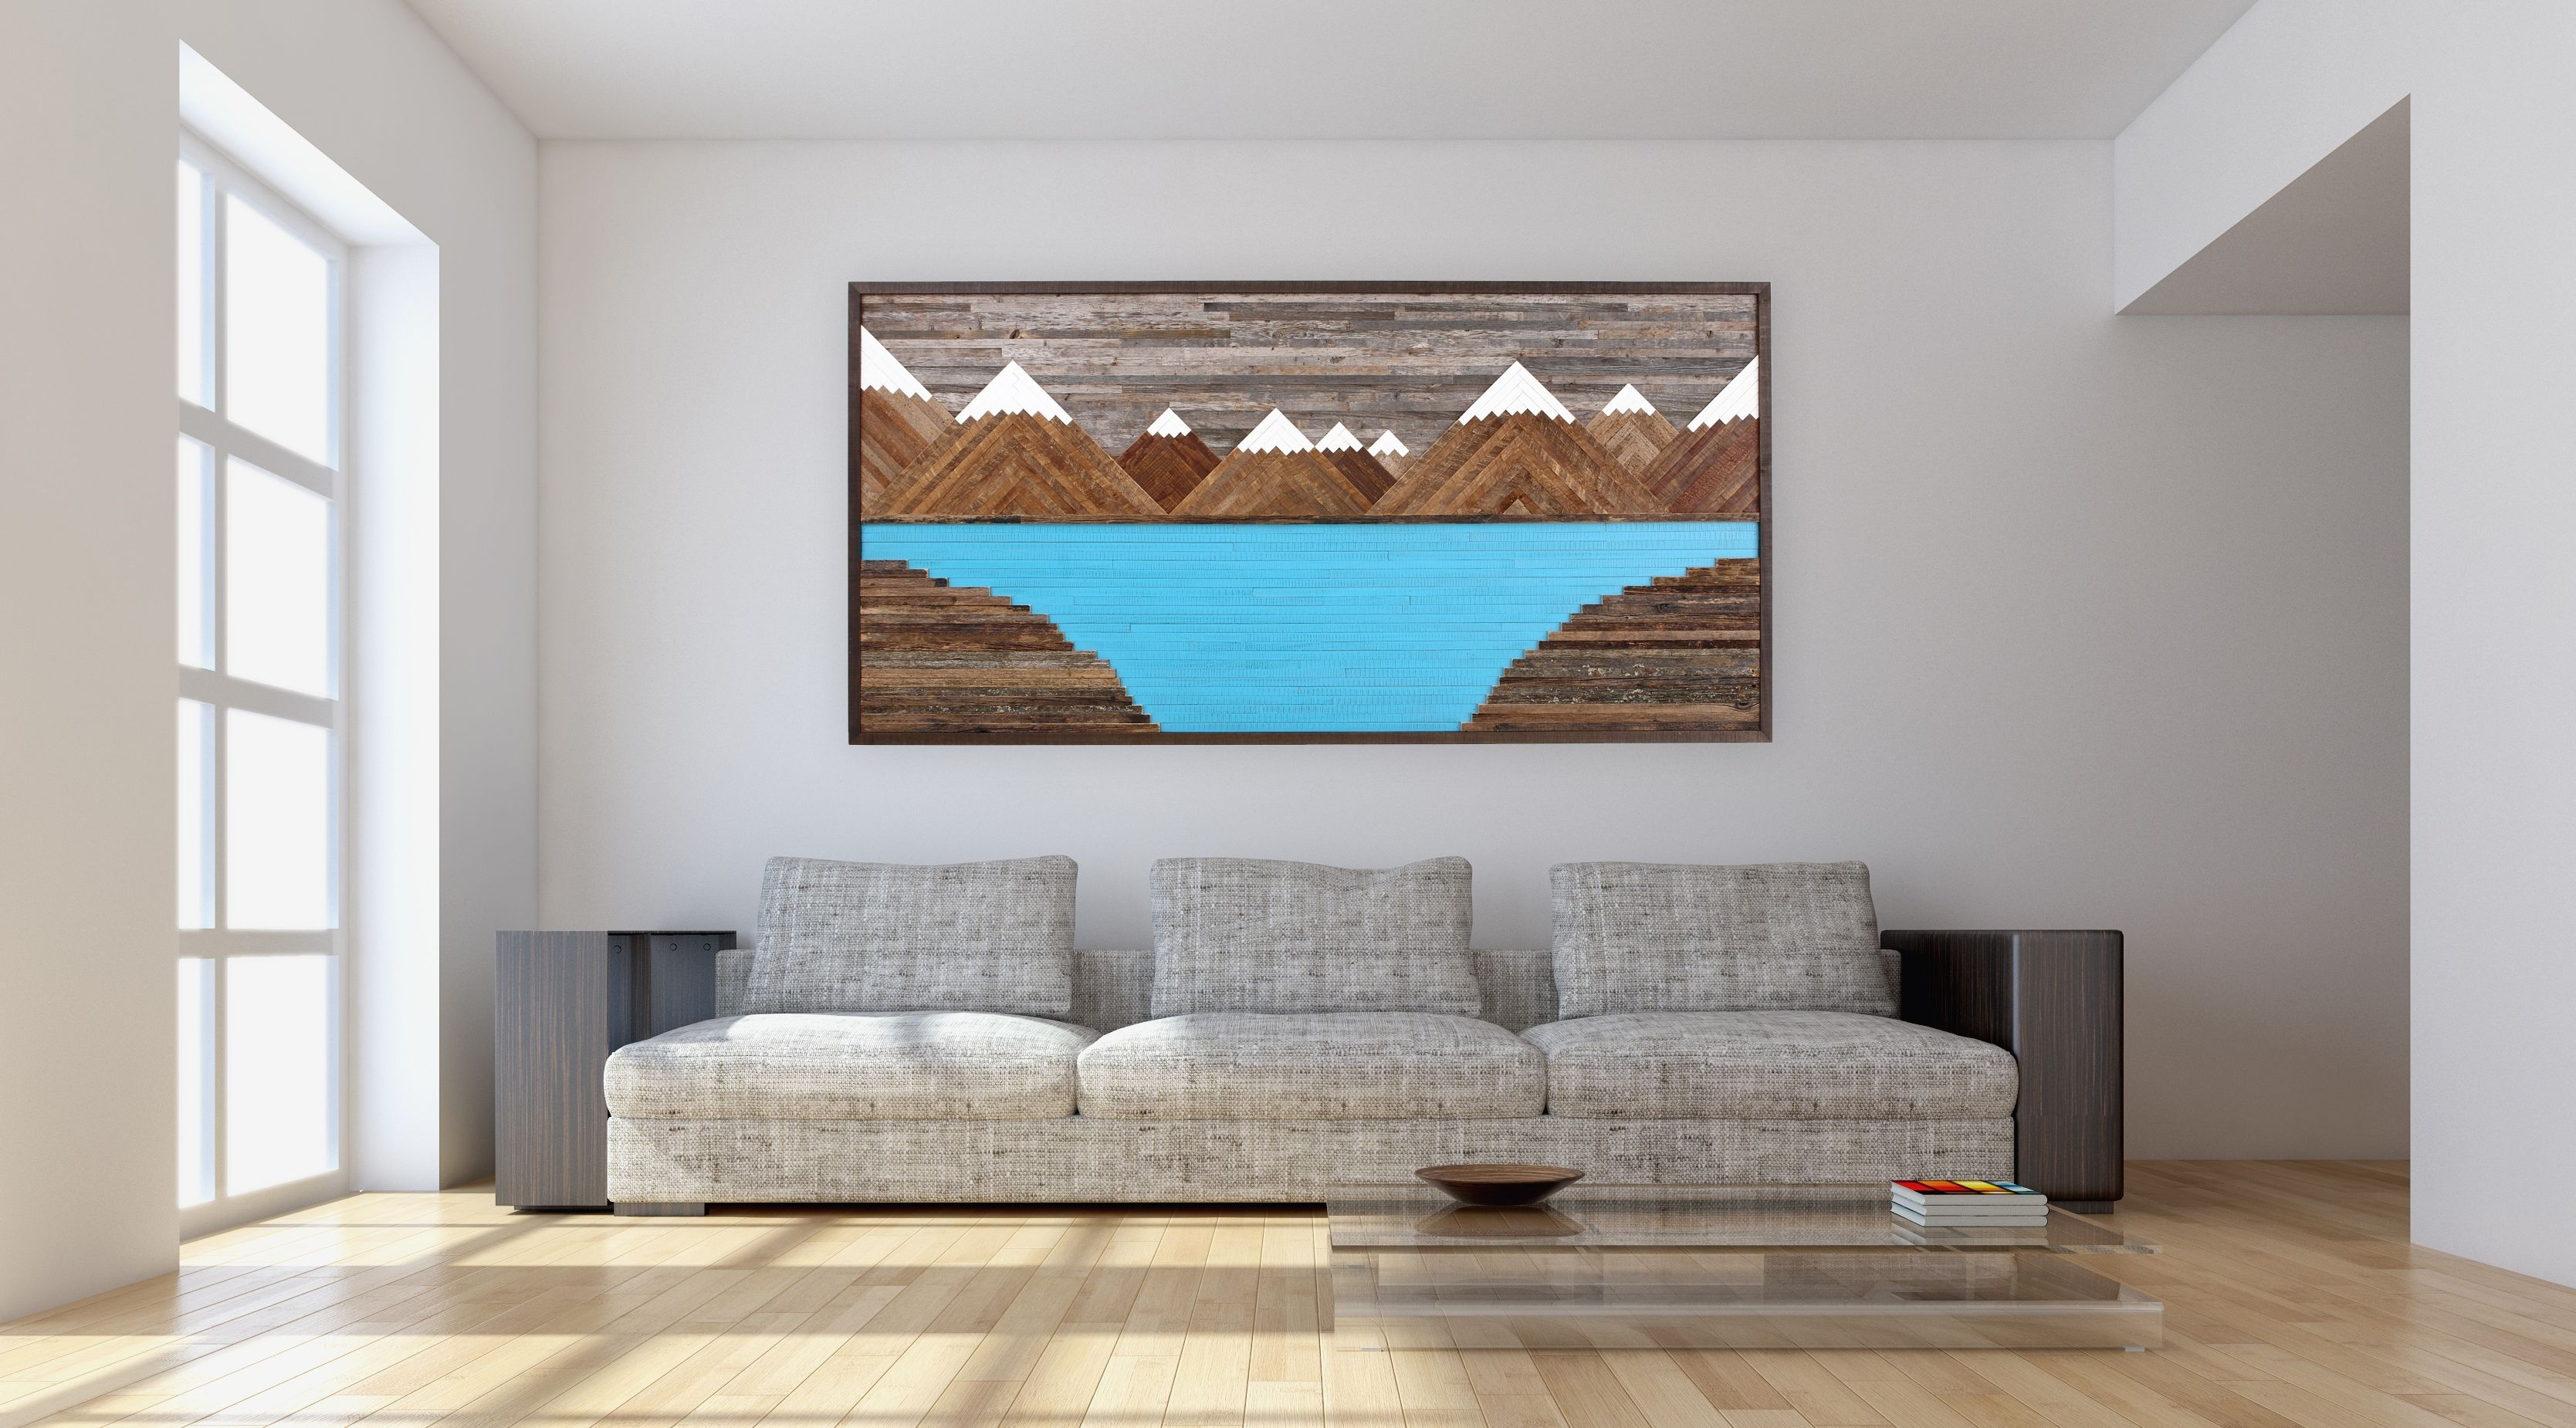 Handmade Glacier Mountain Landscape, Wood Wall Art, Reclaimed Wood With Most Recently Released Rustic Wall Art (View 12 of 15)